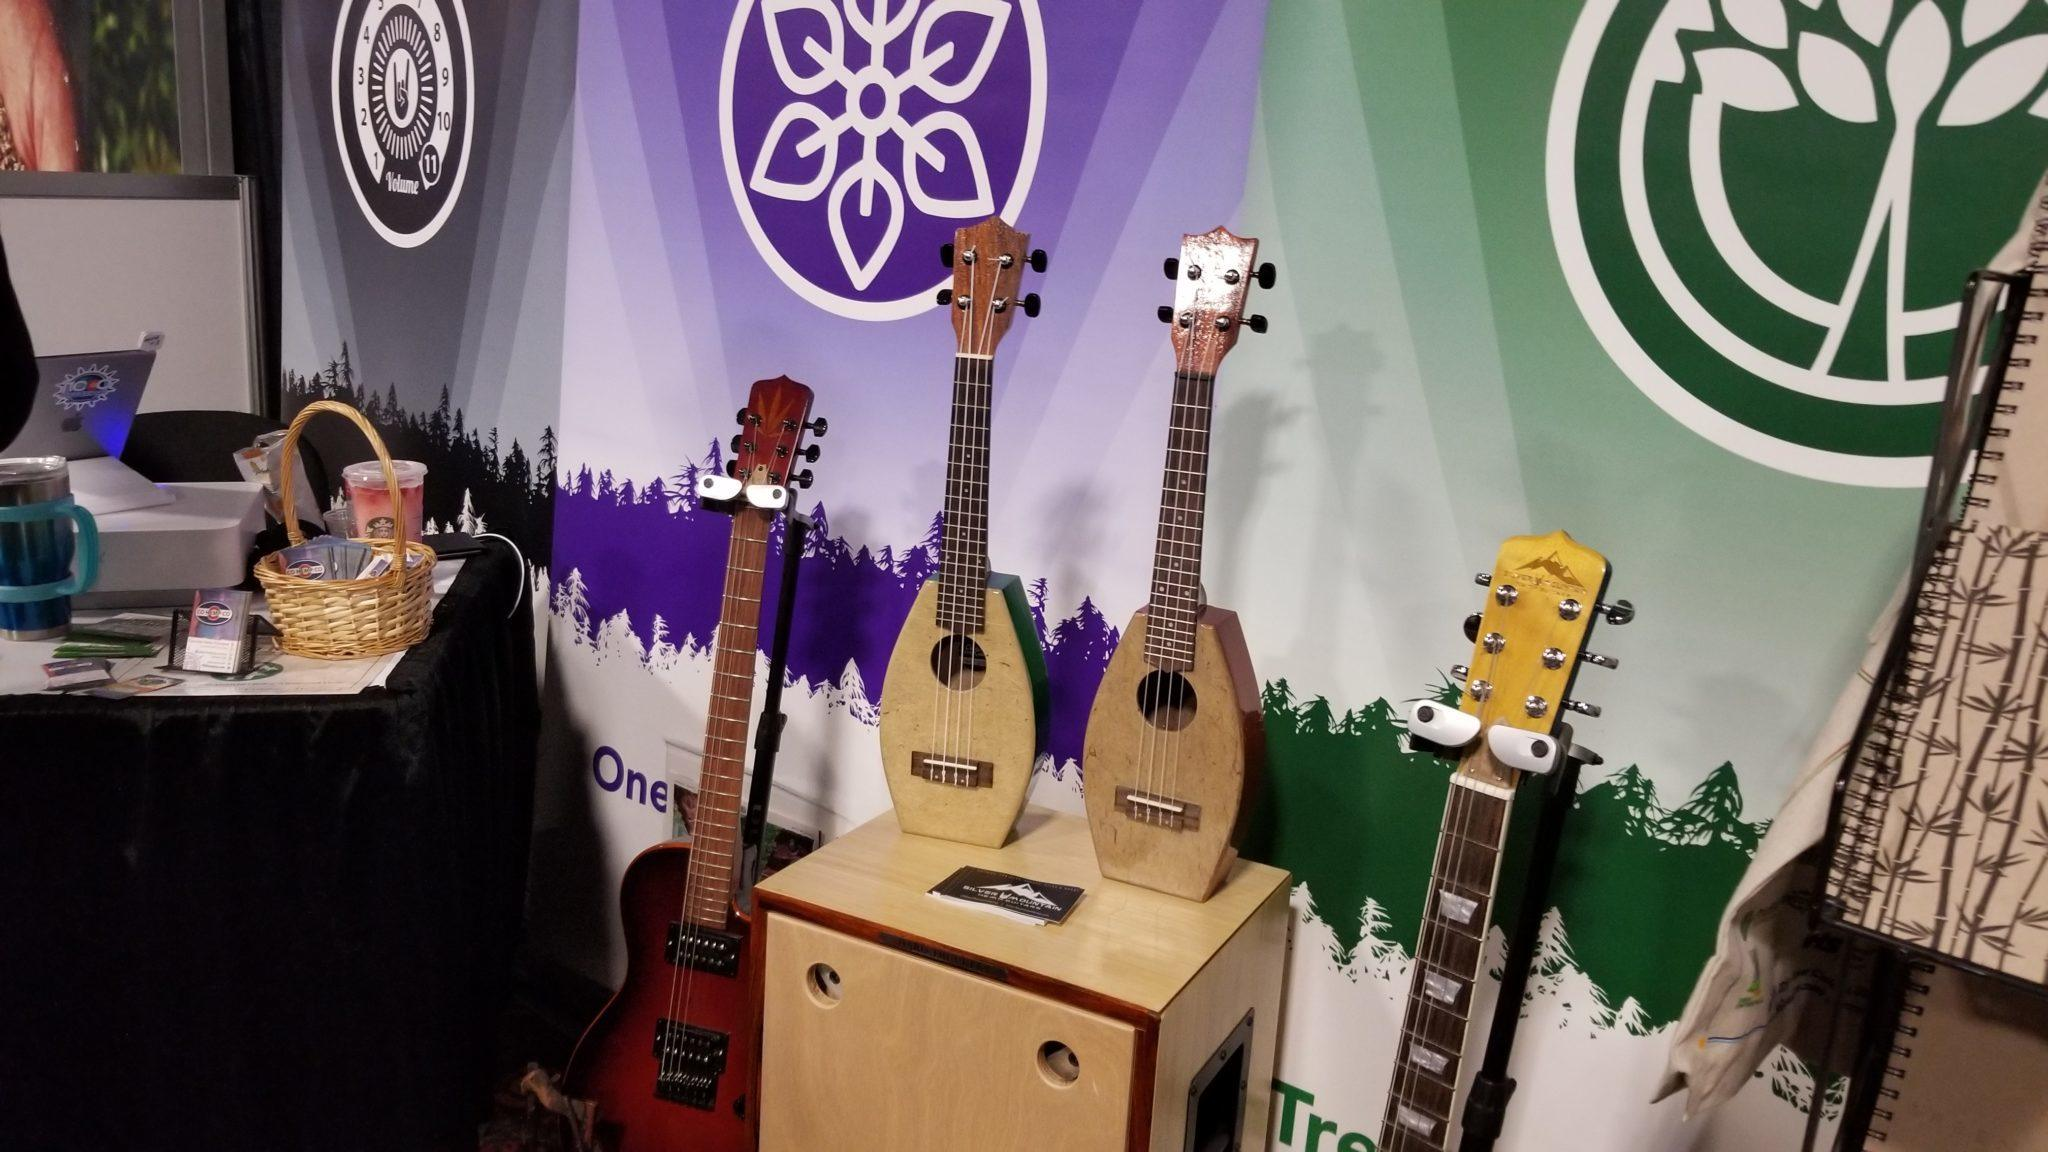 Photo: Hemp guitars and a hemp ukelele from Silver Mountain Hemp Guitars, on display at NoCo 6, the 2019 Noco Hemp Expo in Denver, Colorado.